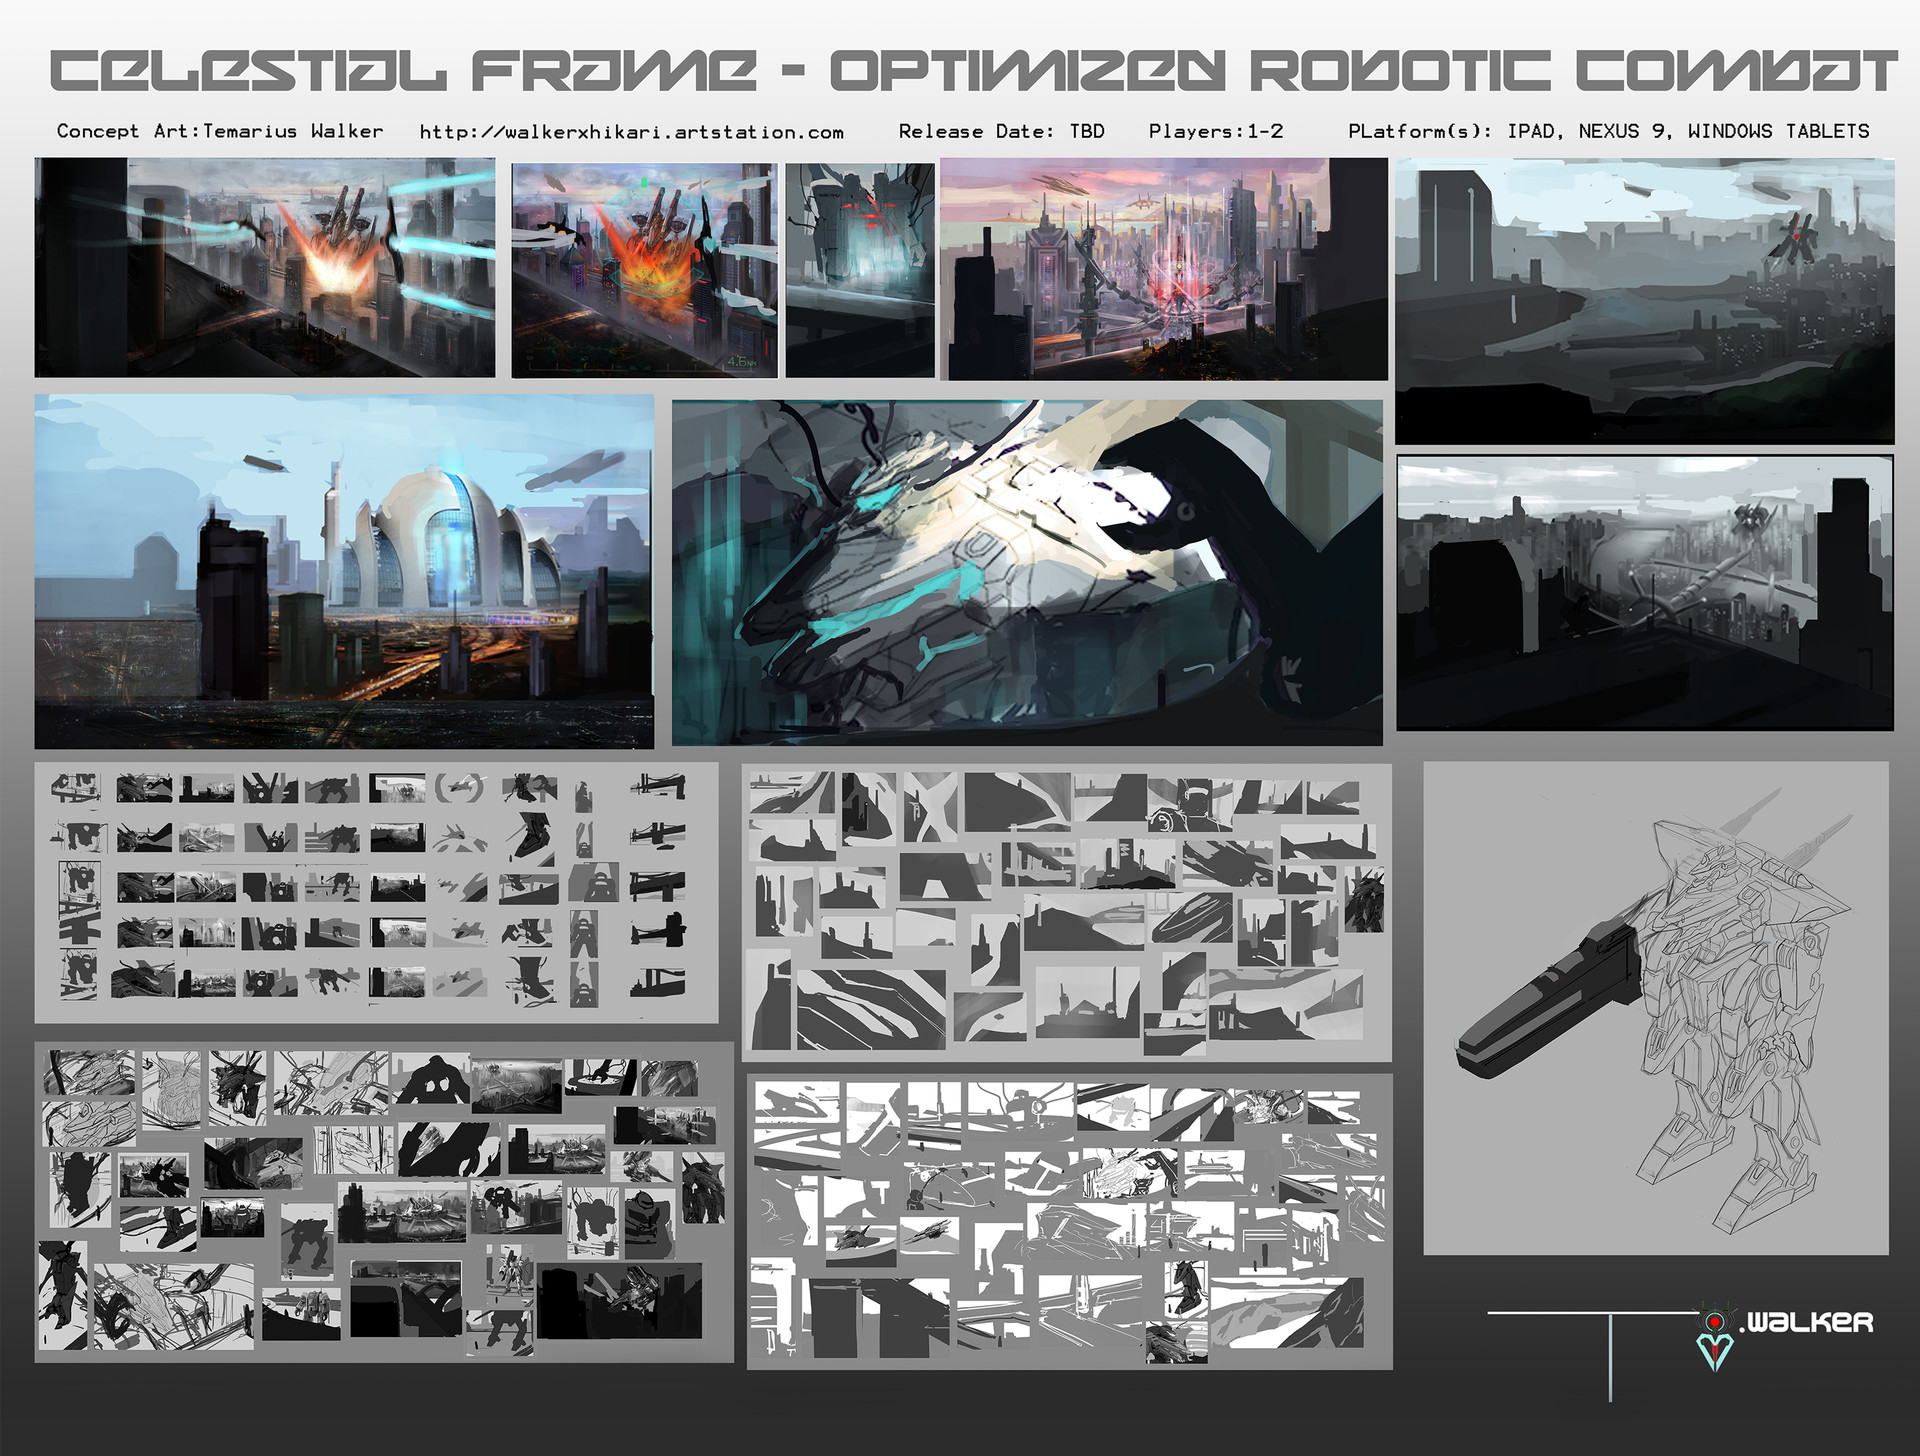 Temarius walker temarius walker cf production pitch revised 01